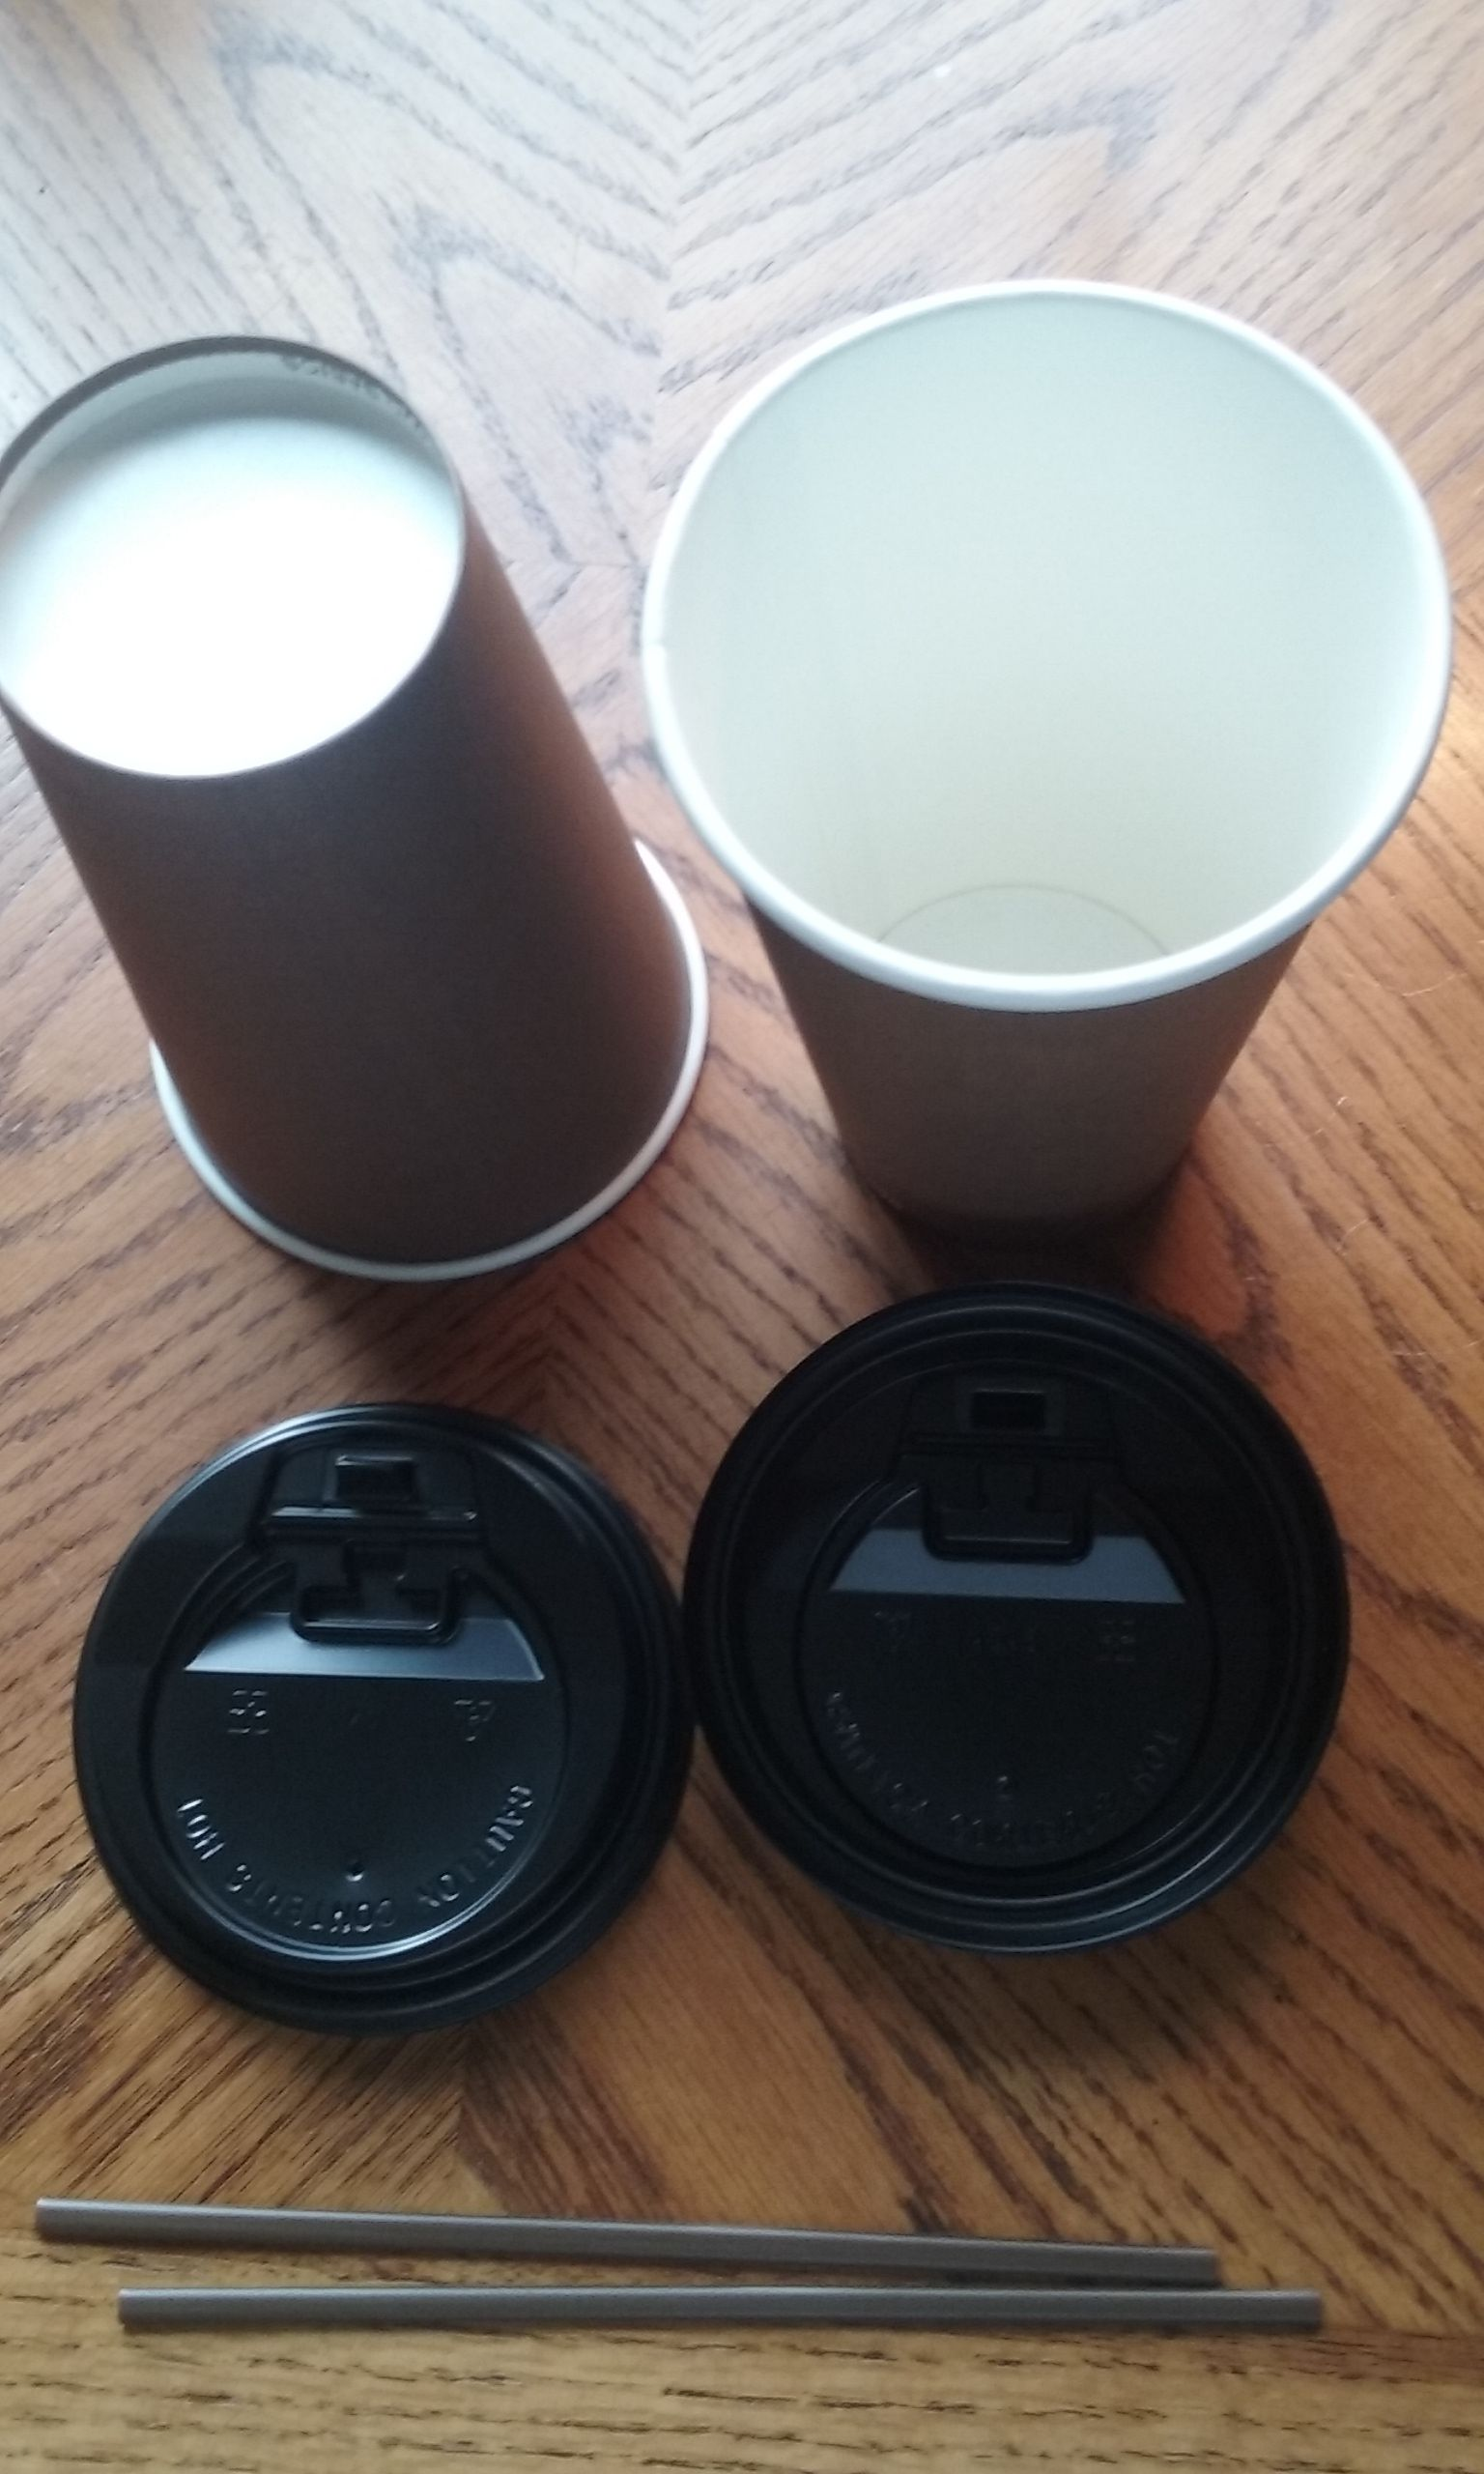 Novo Basics Hot Drink Set | Products Reviewed | The